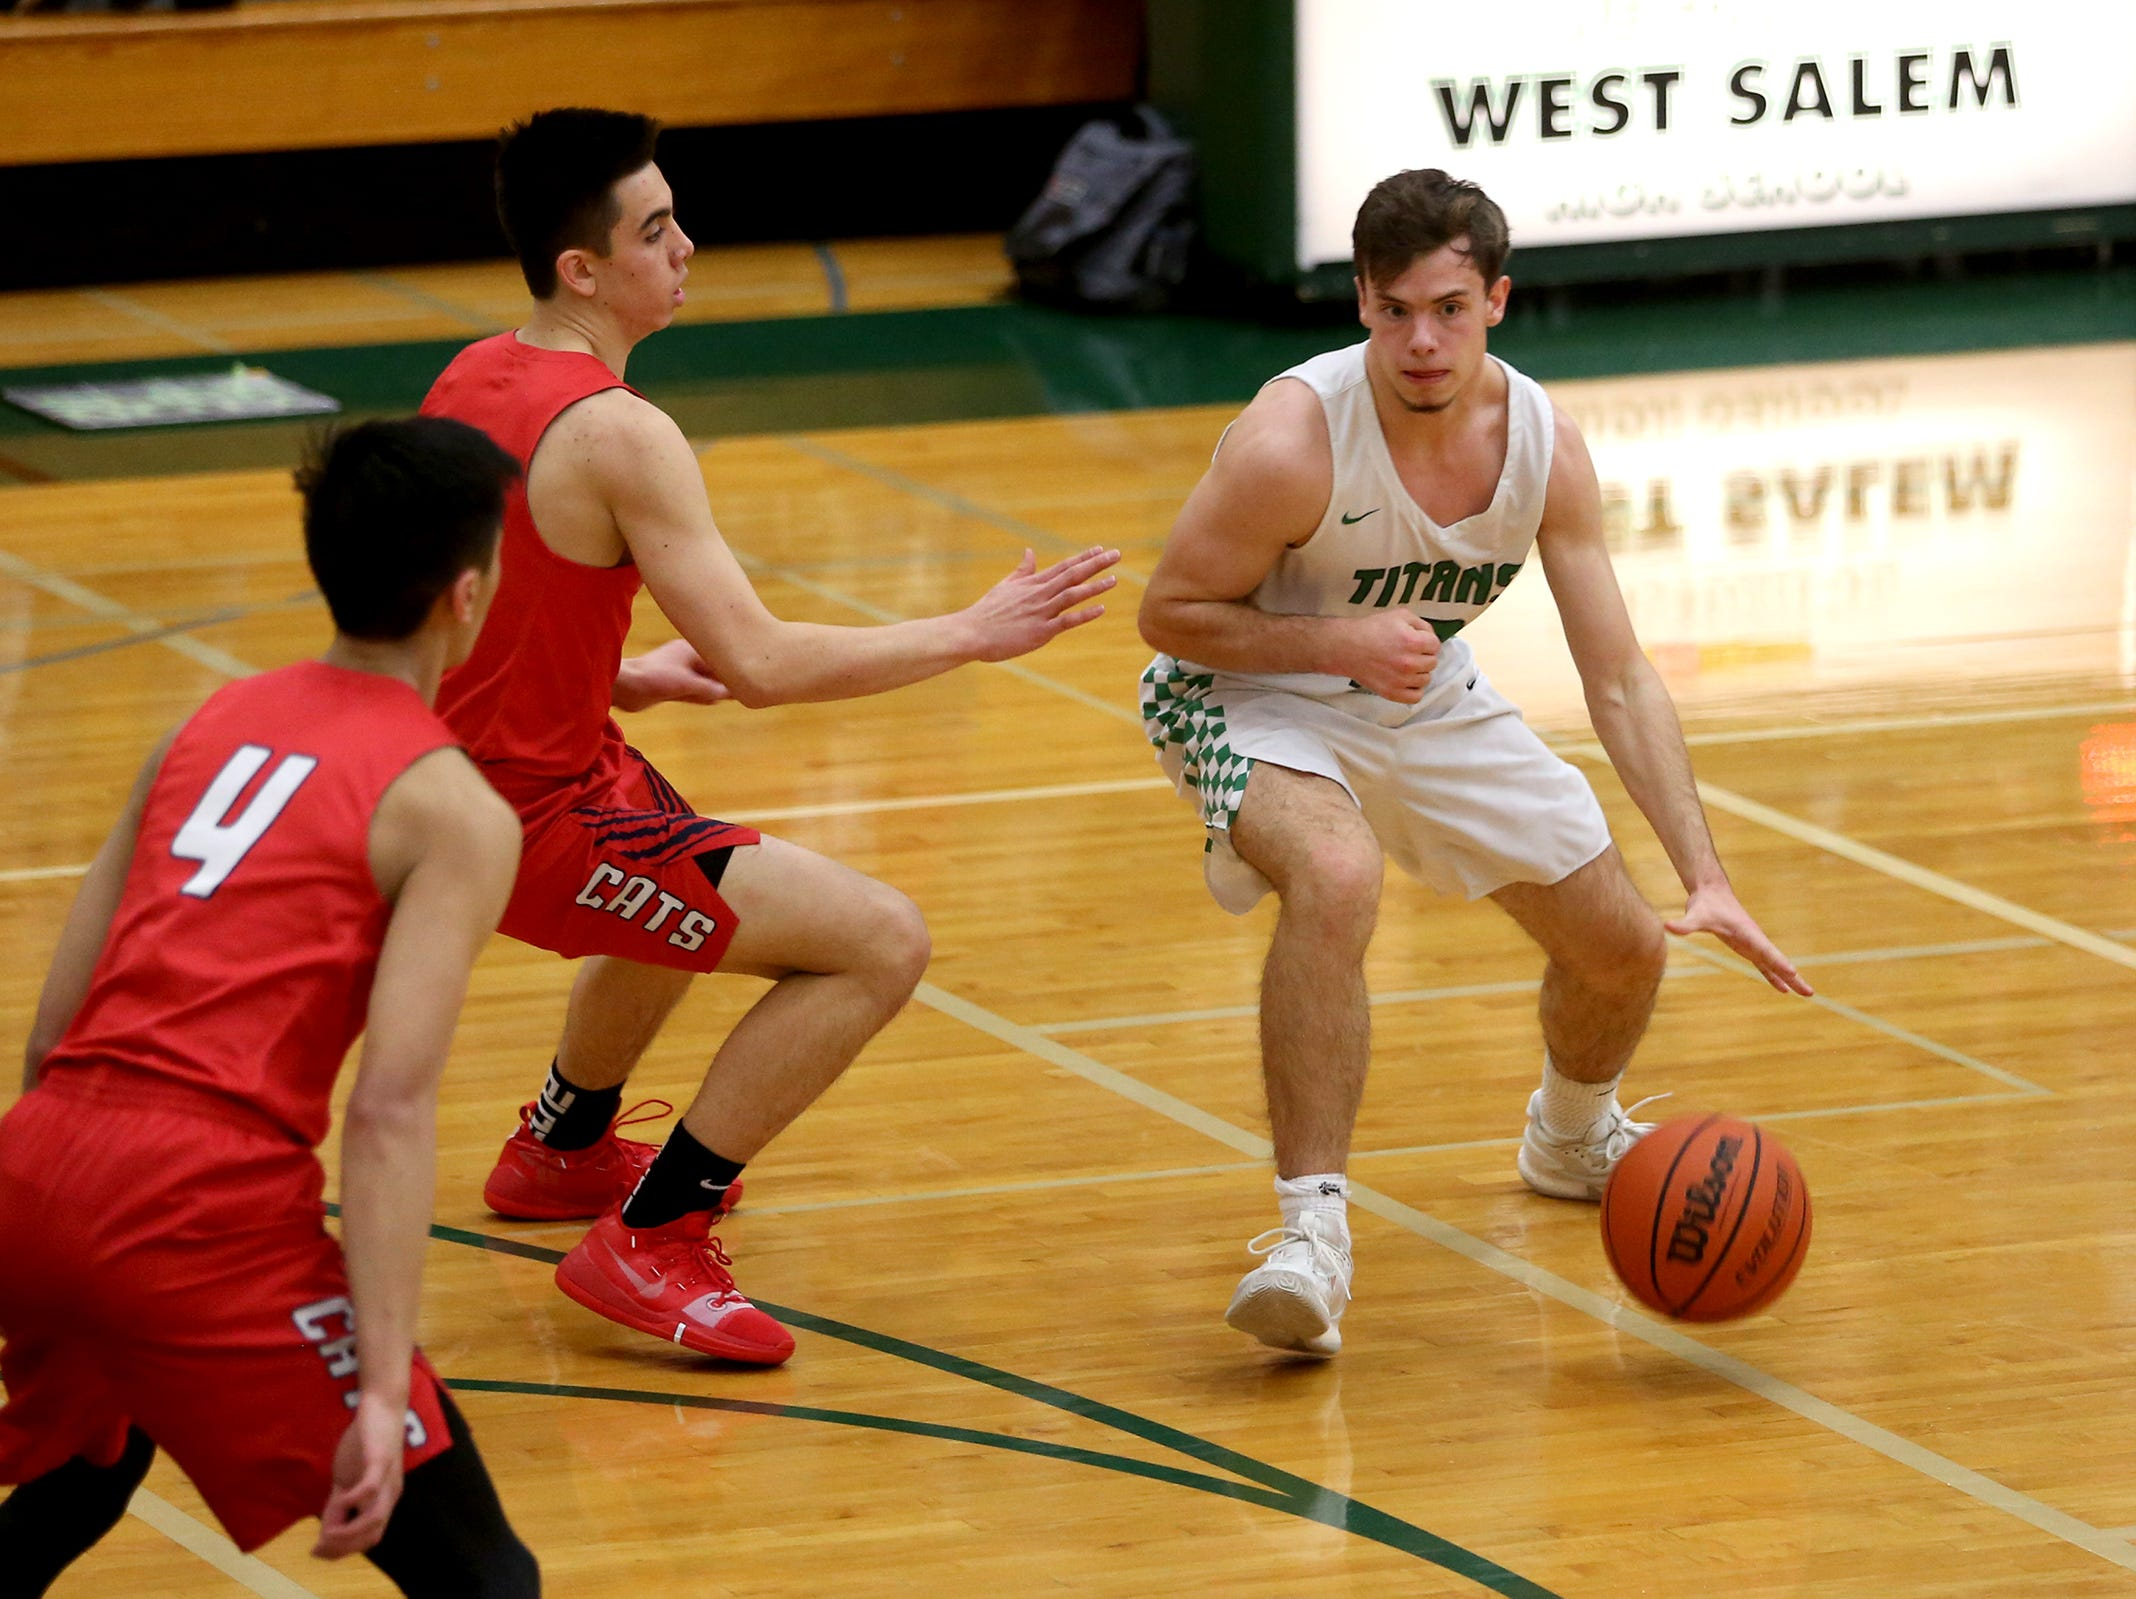 West Salem's Kieran Pruett (12) looks for an opening during the West Salem vs. Westview 6A Boys Basketball State Championships first round at West Salem High School in Salem on Tuesday, Feb. 26, 2019.